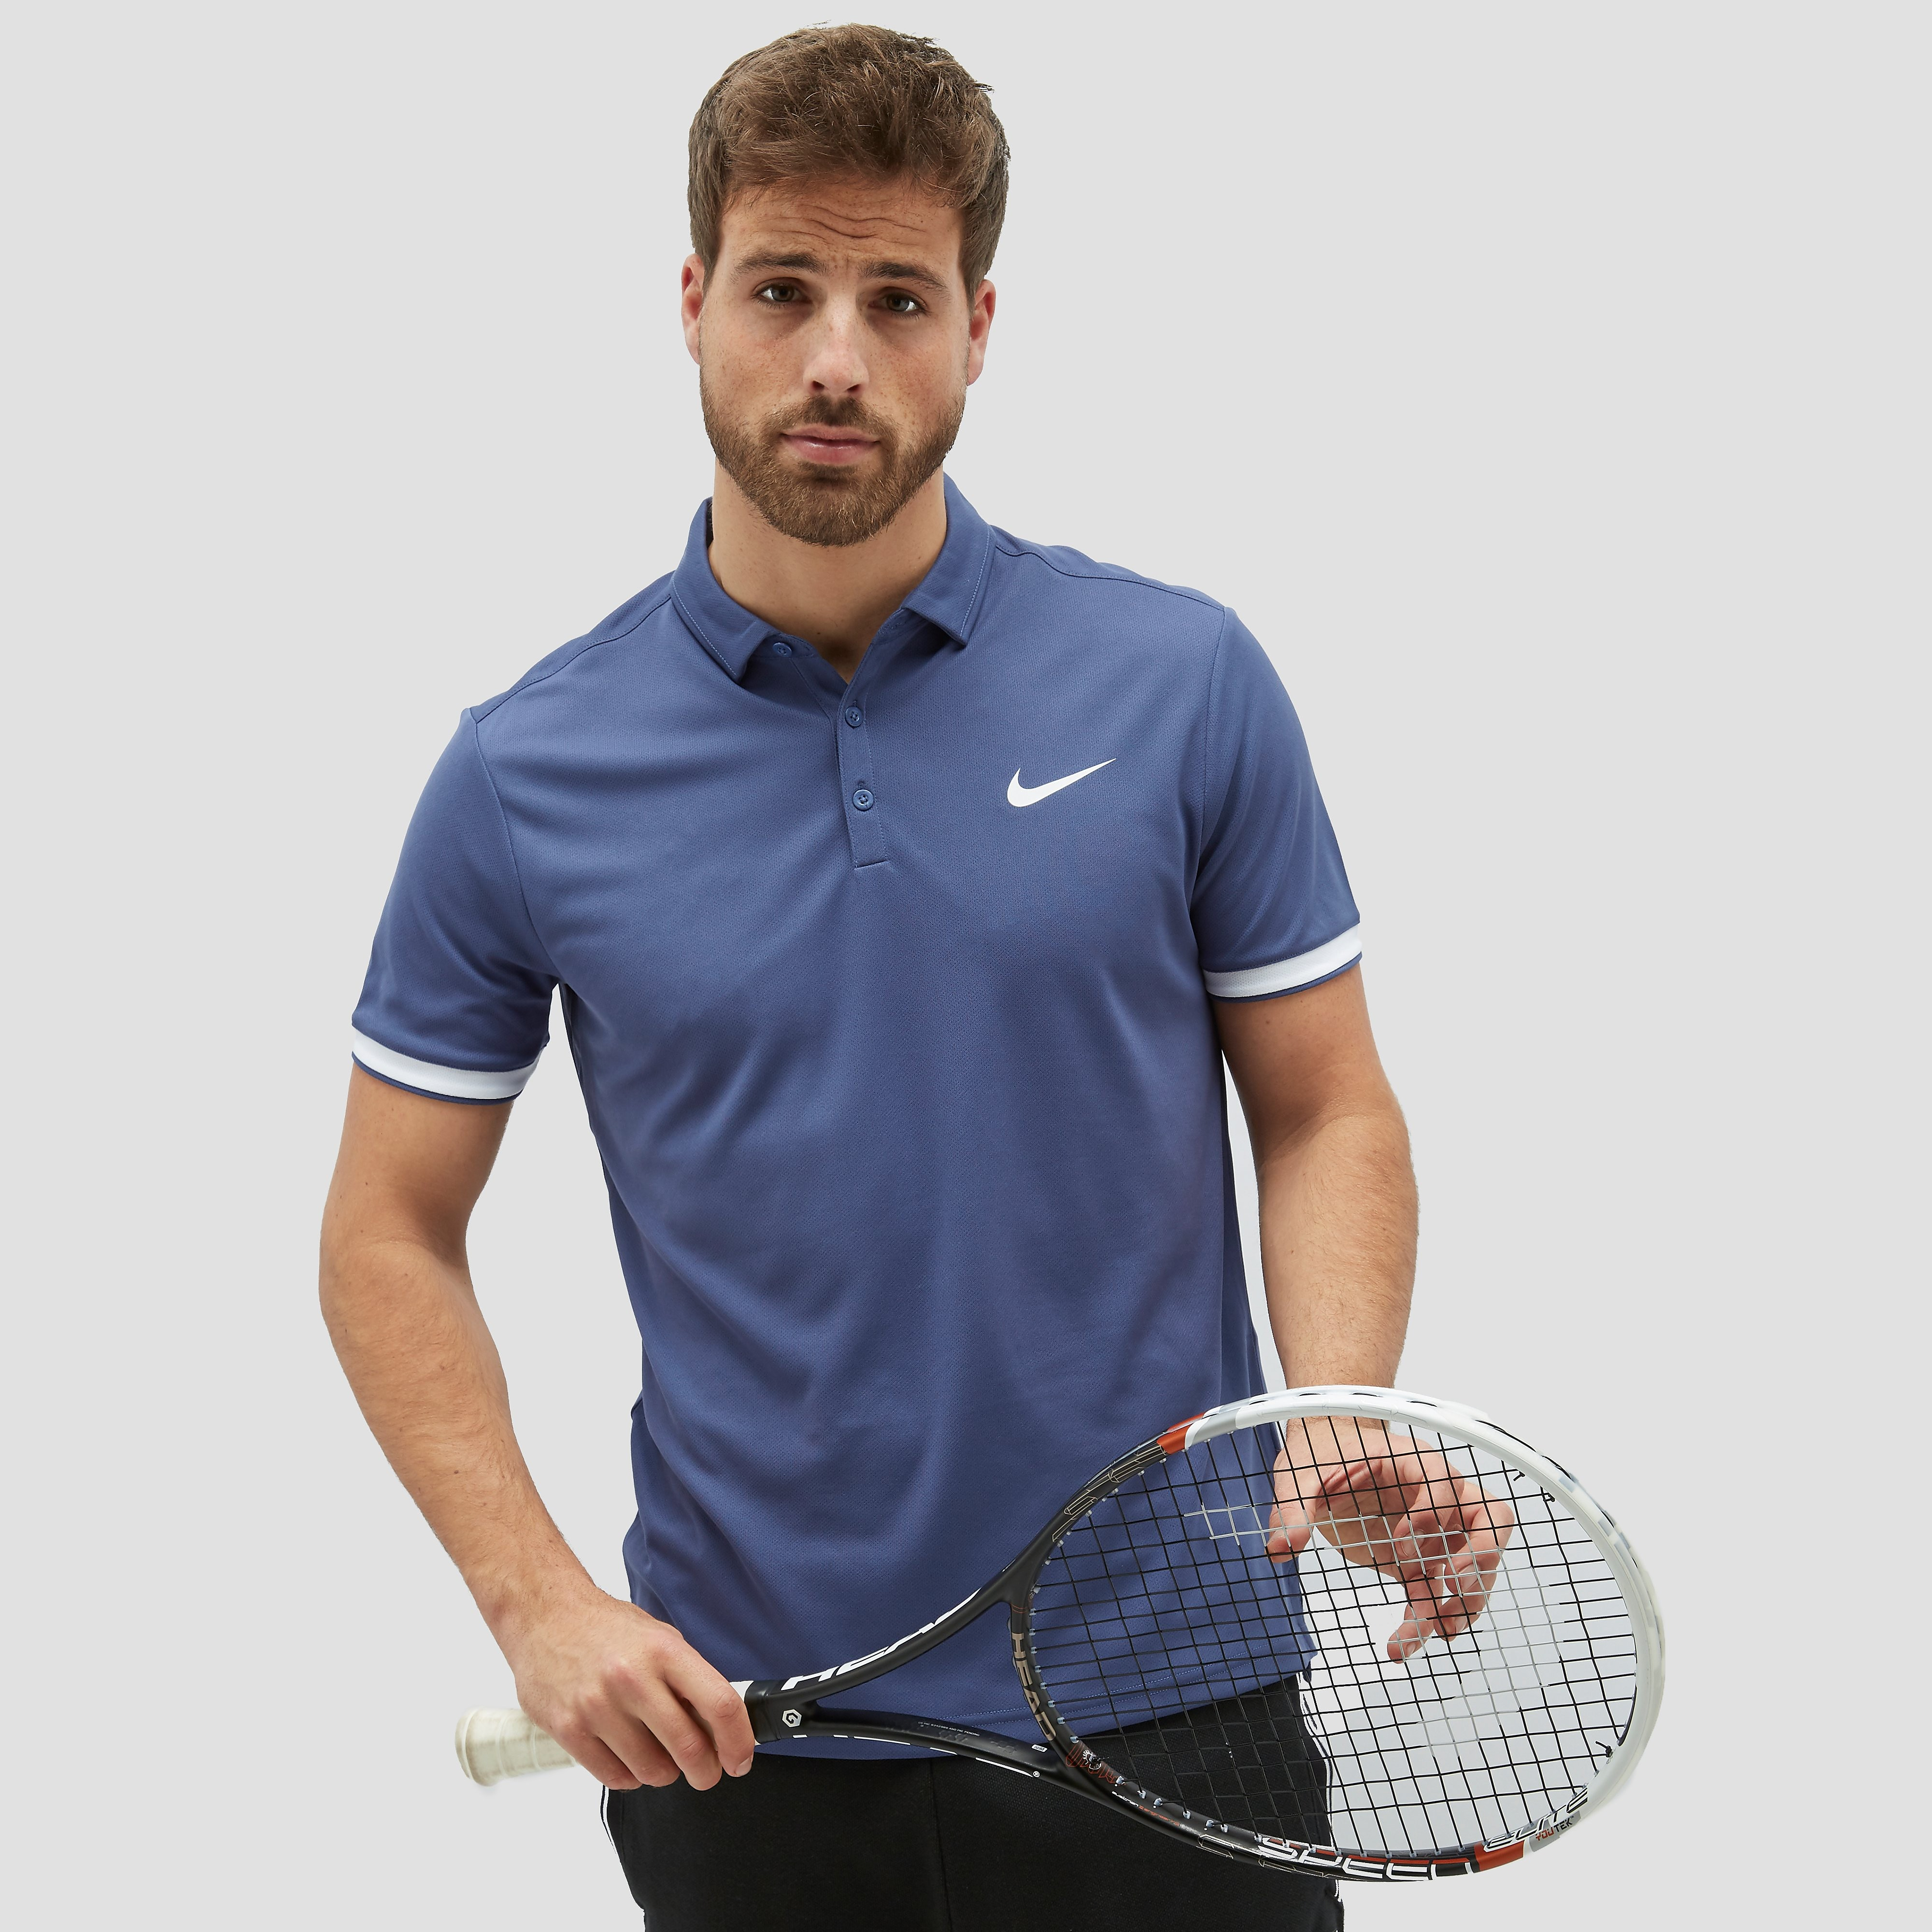 NIKE CITY DRY TEAM TENNIS POLO BLAUW/WIT HEREN